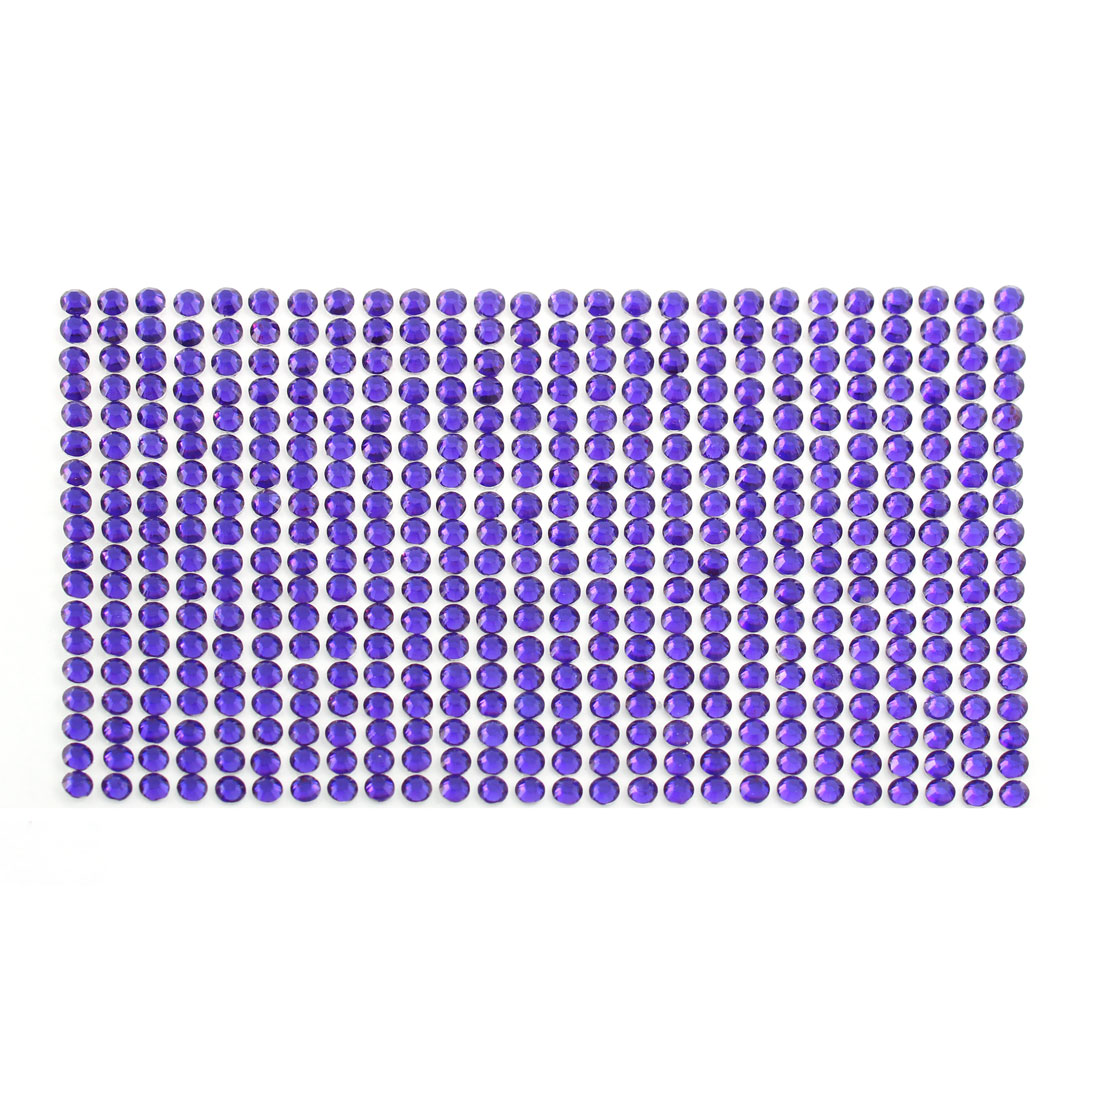 Purple 5mm Round Self Adhesive Bling Crystal Rhinestone Stickers for Car Mobile PC Decoration